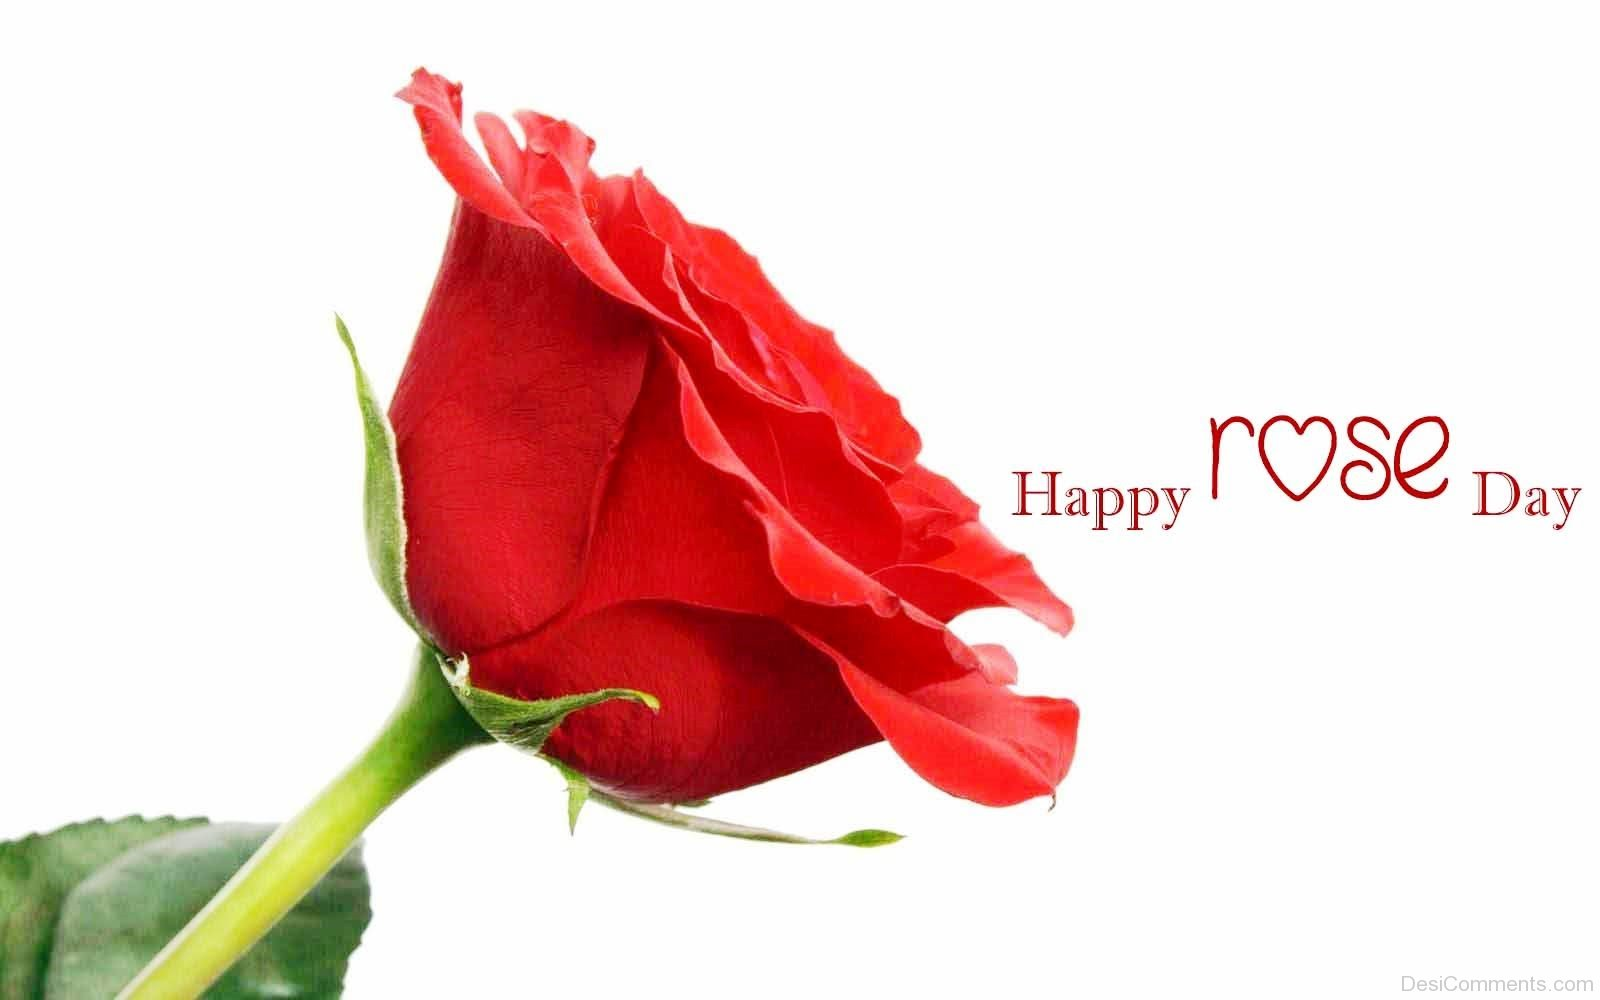 Happy Rose Day Nice Picture Desicomments